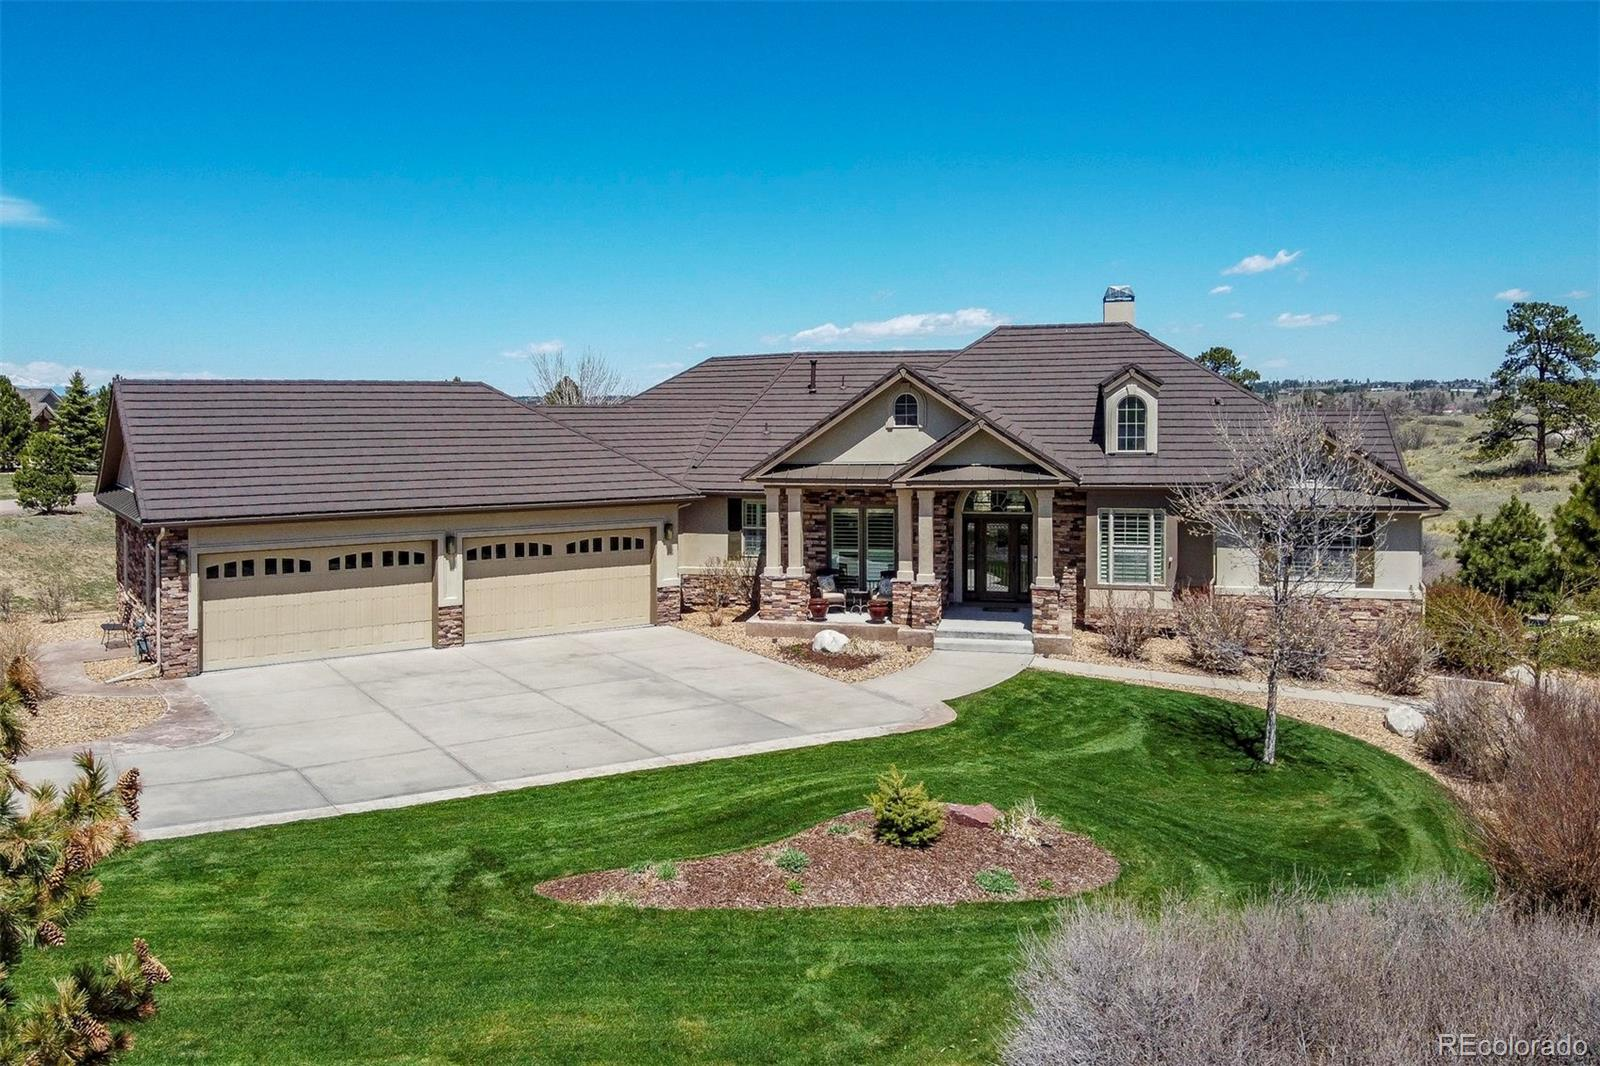 Beautiful, custom ranch on 1.5 acres with serene views! This 6 Bedroom, 6 Bathroom sprawling ranch is updated throughout. Enter through the Foyer to enjoy  the Great Room that allows for an abundance of natural light, hard wood floors and built in shelving. The Kitchen is updated with 42